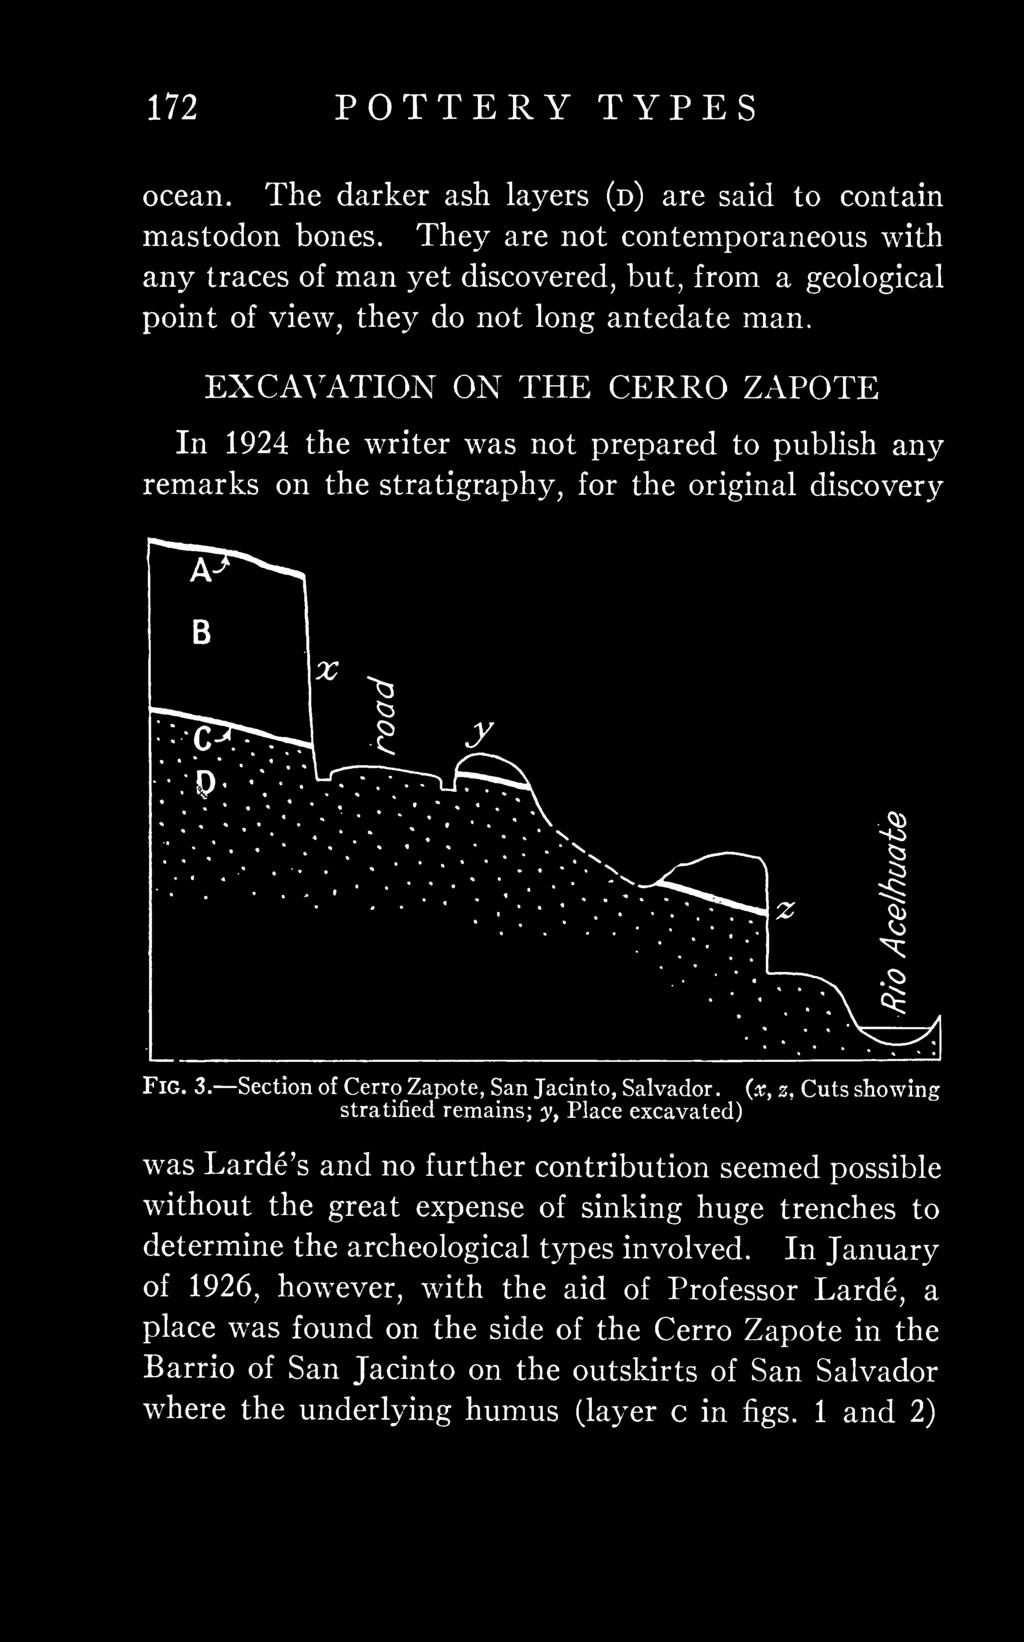 "In EXCAVATION ON THE CERRO ZAPOTE 1924 the writer was not prepared to publish any remarks on the stratigraphy, for the original discovery """"T?^ B ^^ X ^^ e ^.^ v-p:*:'v :^ Lr- N V Z >T-<: Fig. 3."